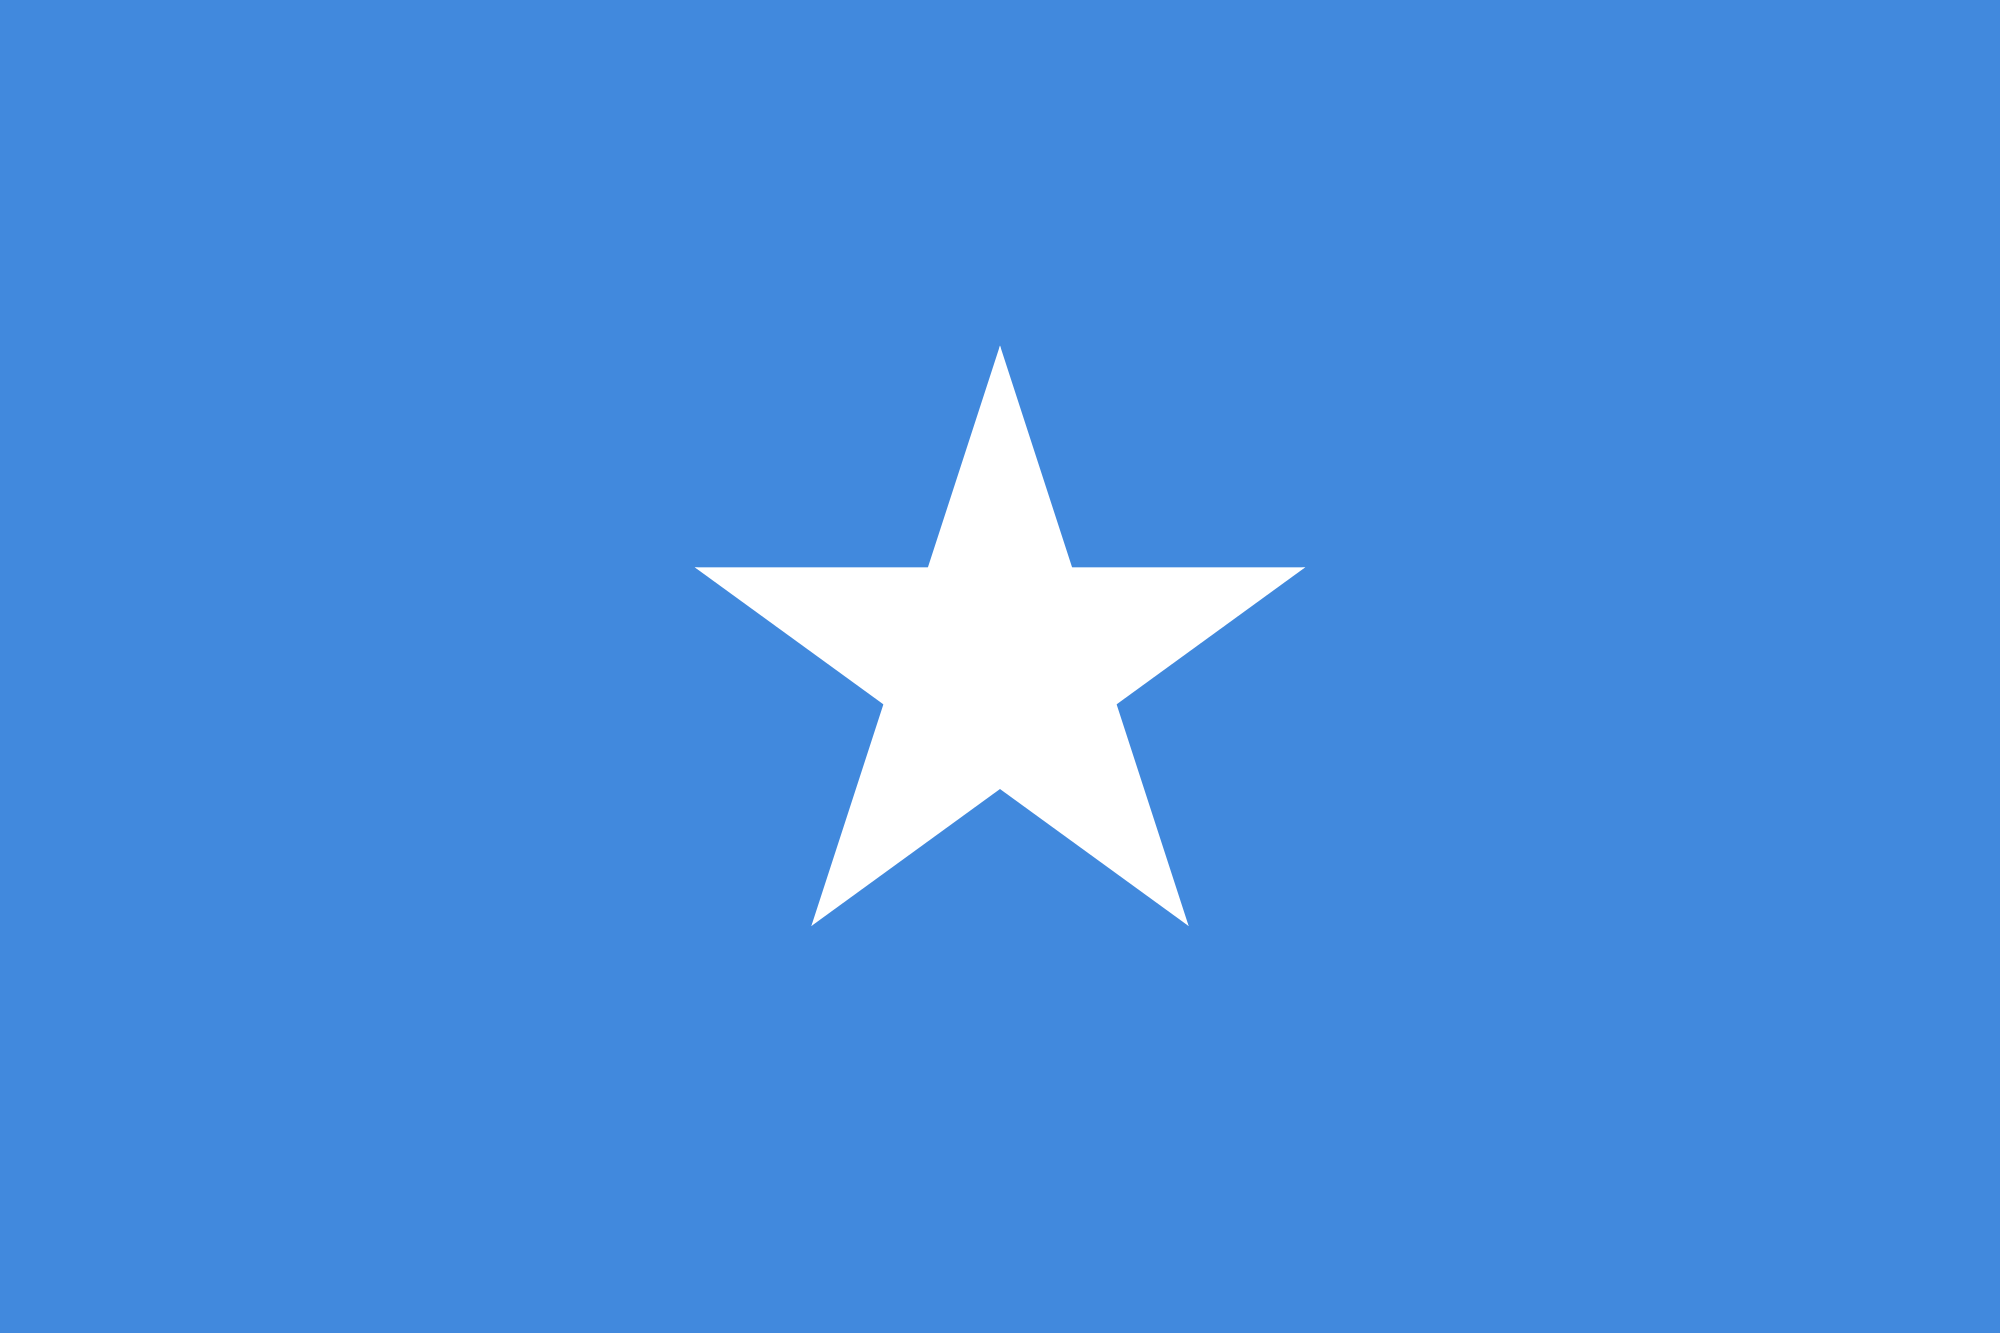 Somalia Flag and Description